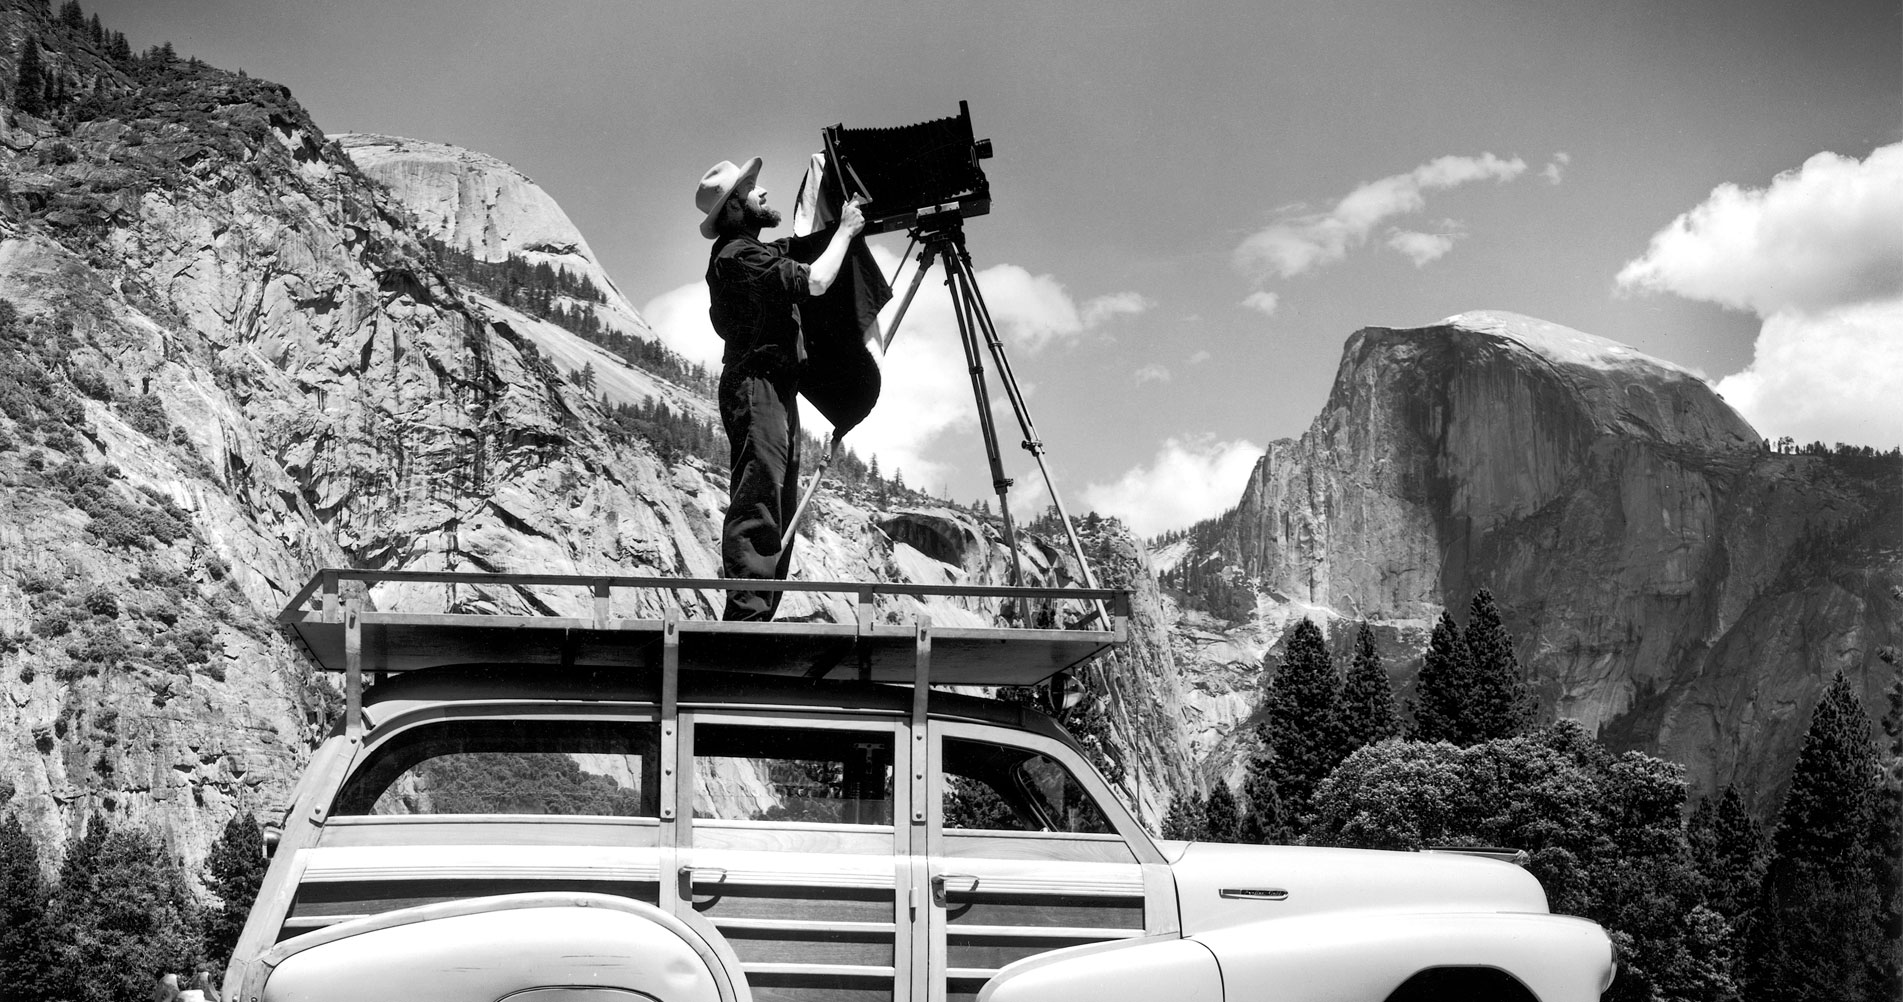 a biography of the life and music career of ansel easton adams Ansel adams was born on february 20, 1902 in san francisco, california, usa as ansel easton adams he is known for his work on ben casey (1961), electrode universe (2013) and ansel adams, photographer (1957) he was married to virginia rose best he died on april 22, 1984 in carmel, california see full bio.